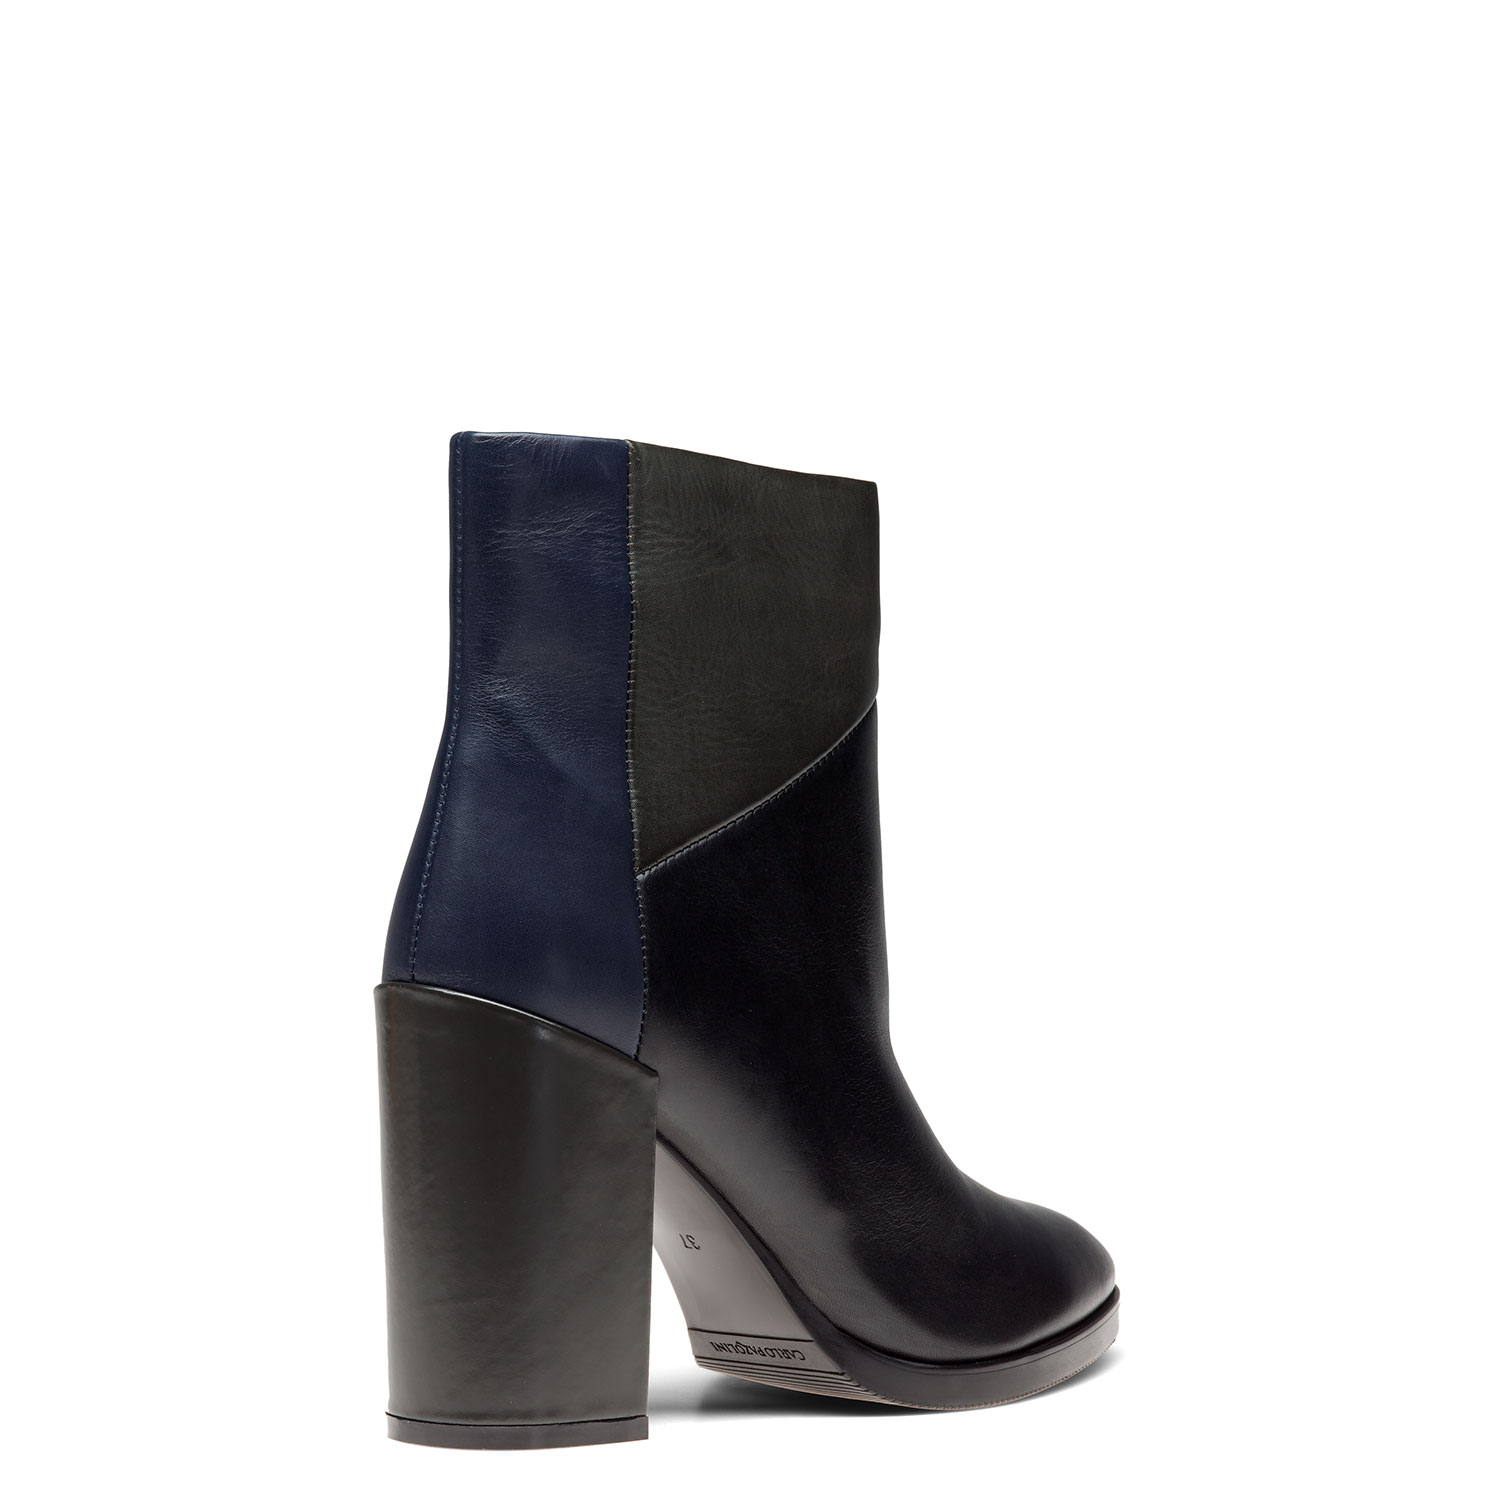 Women's cold weather ankle boots CARLO PAZOLINI FL-DEY1-19